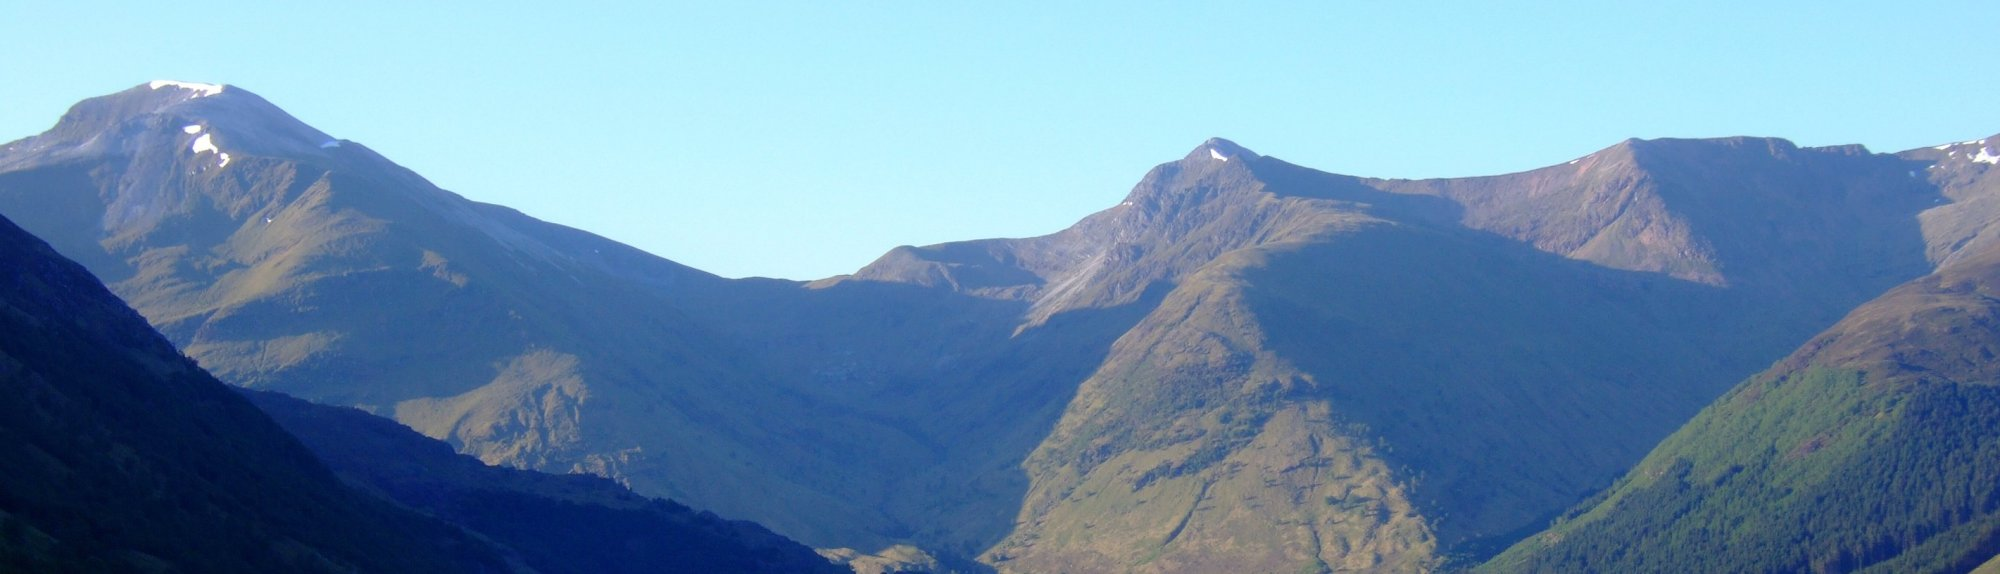 The view from the path, south to the Mamores range